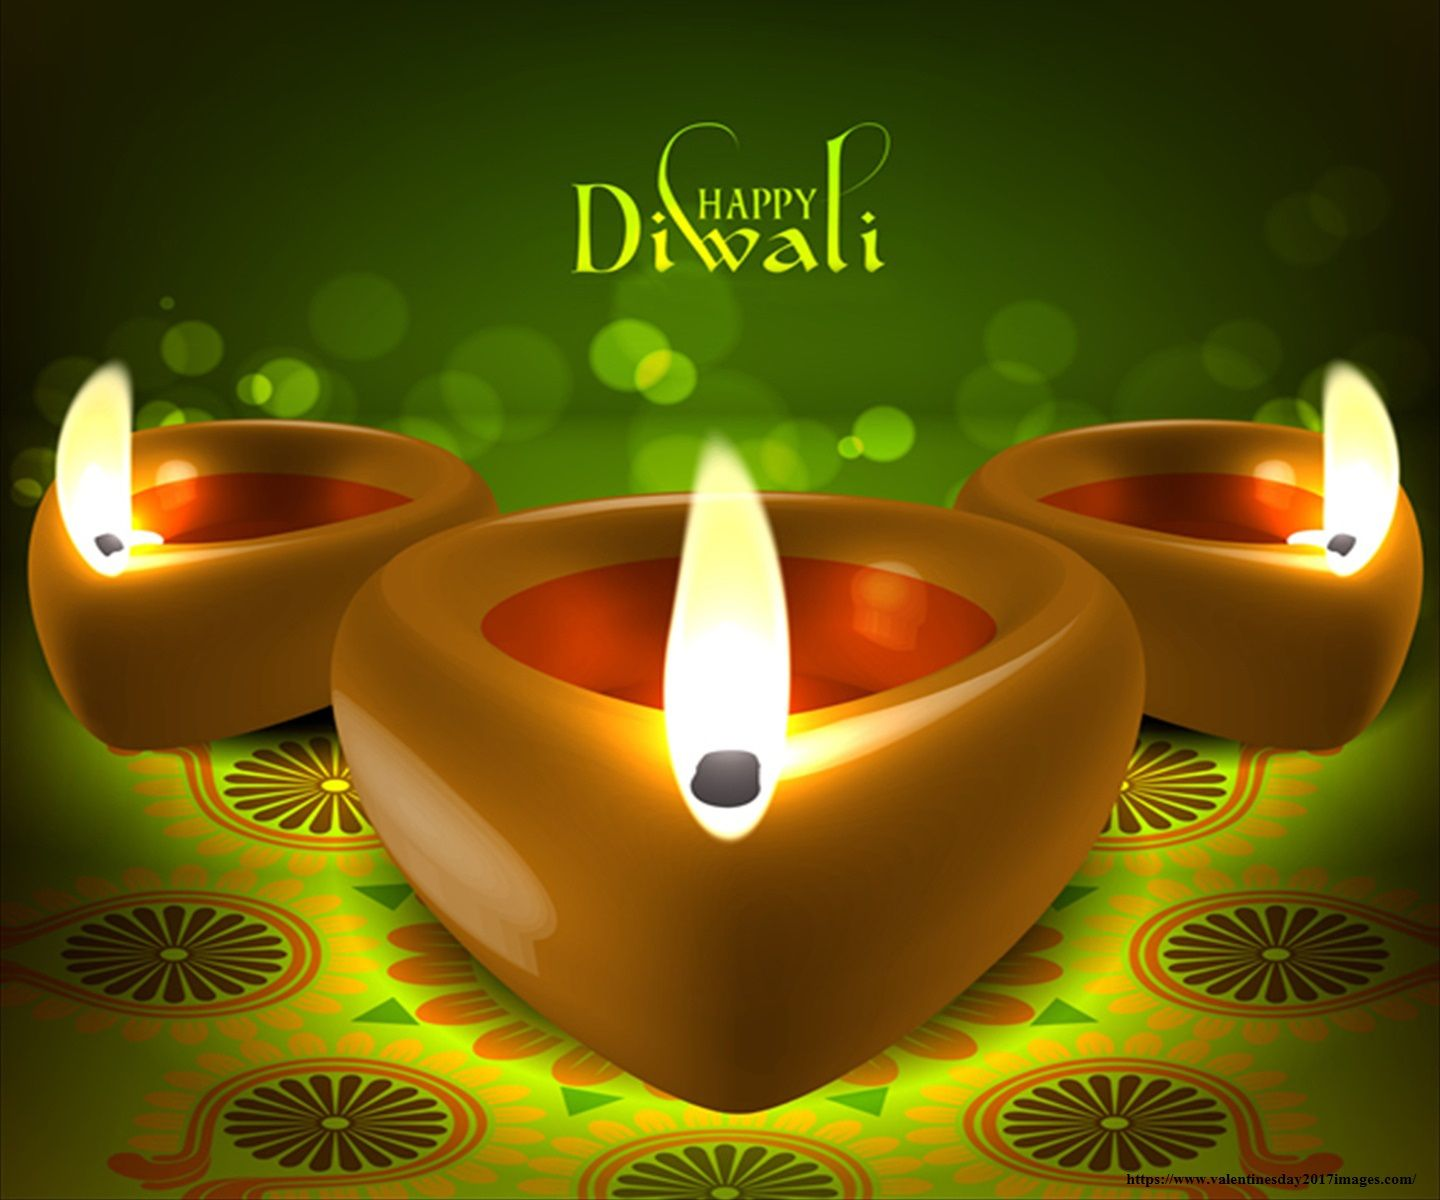 Happy Diwali 2018 Greetings Hd Images Wishes Jokes Sms